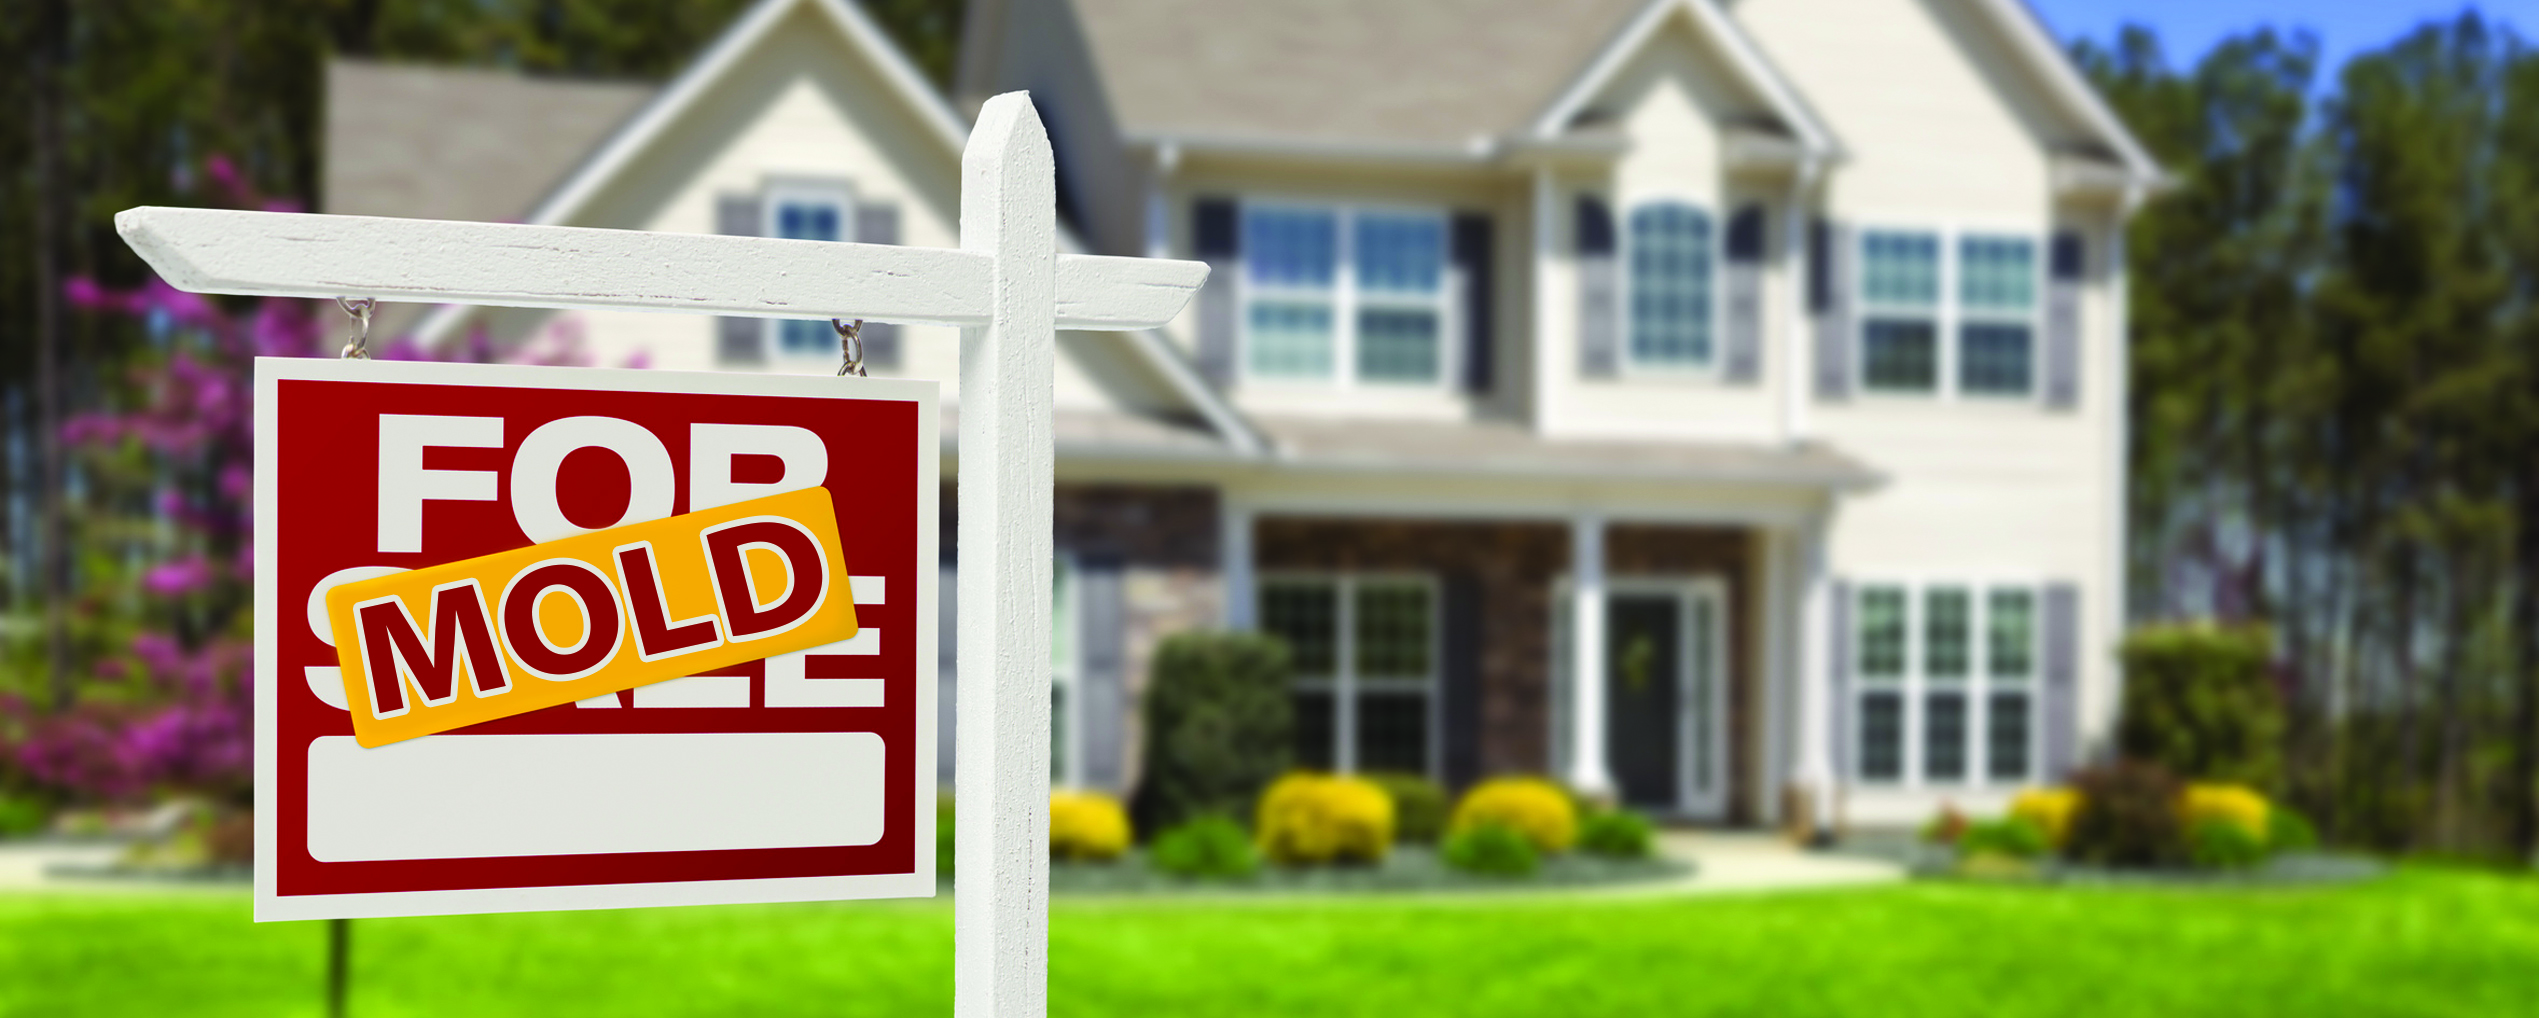 Home Inspector Found Mold NJ Real Estate